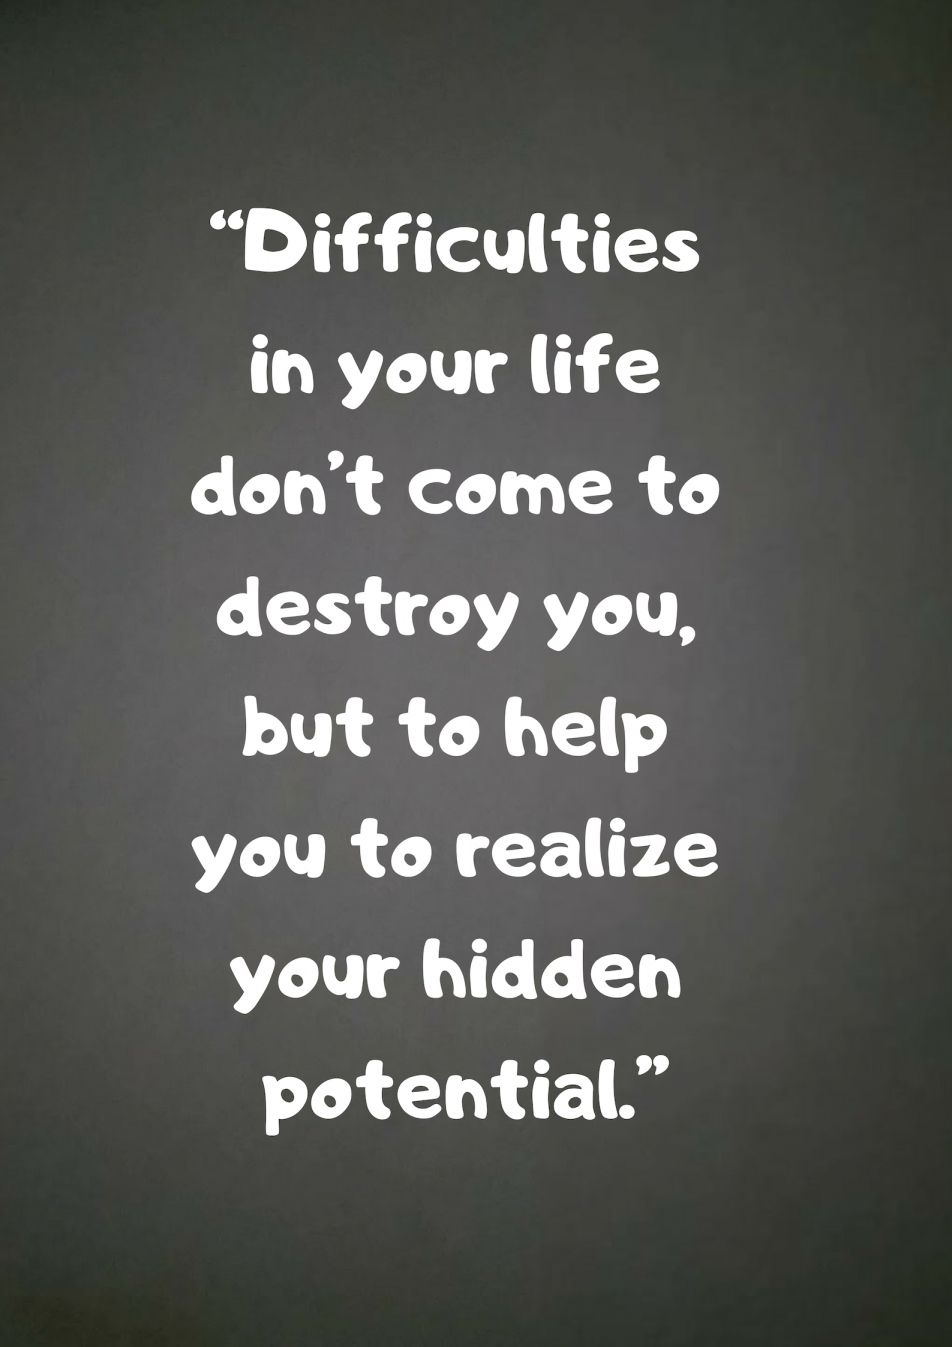 17 Difficulties In Life Quotes Images Difficulties Quotes Life Quotes Image Quotes